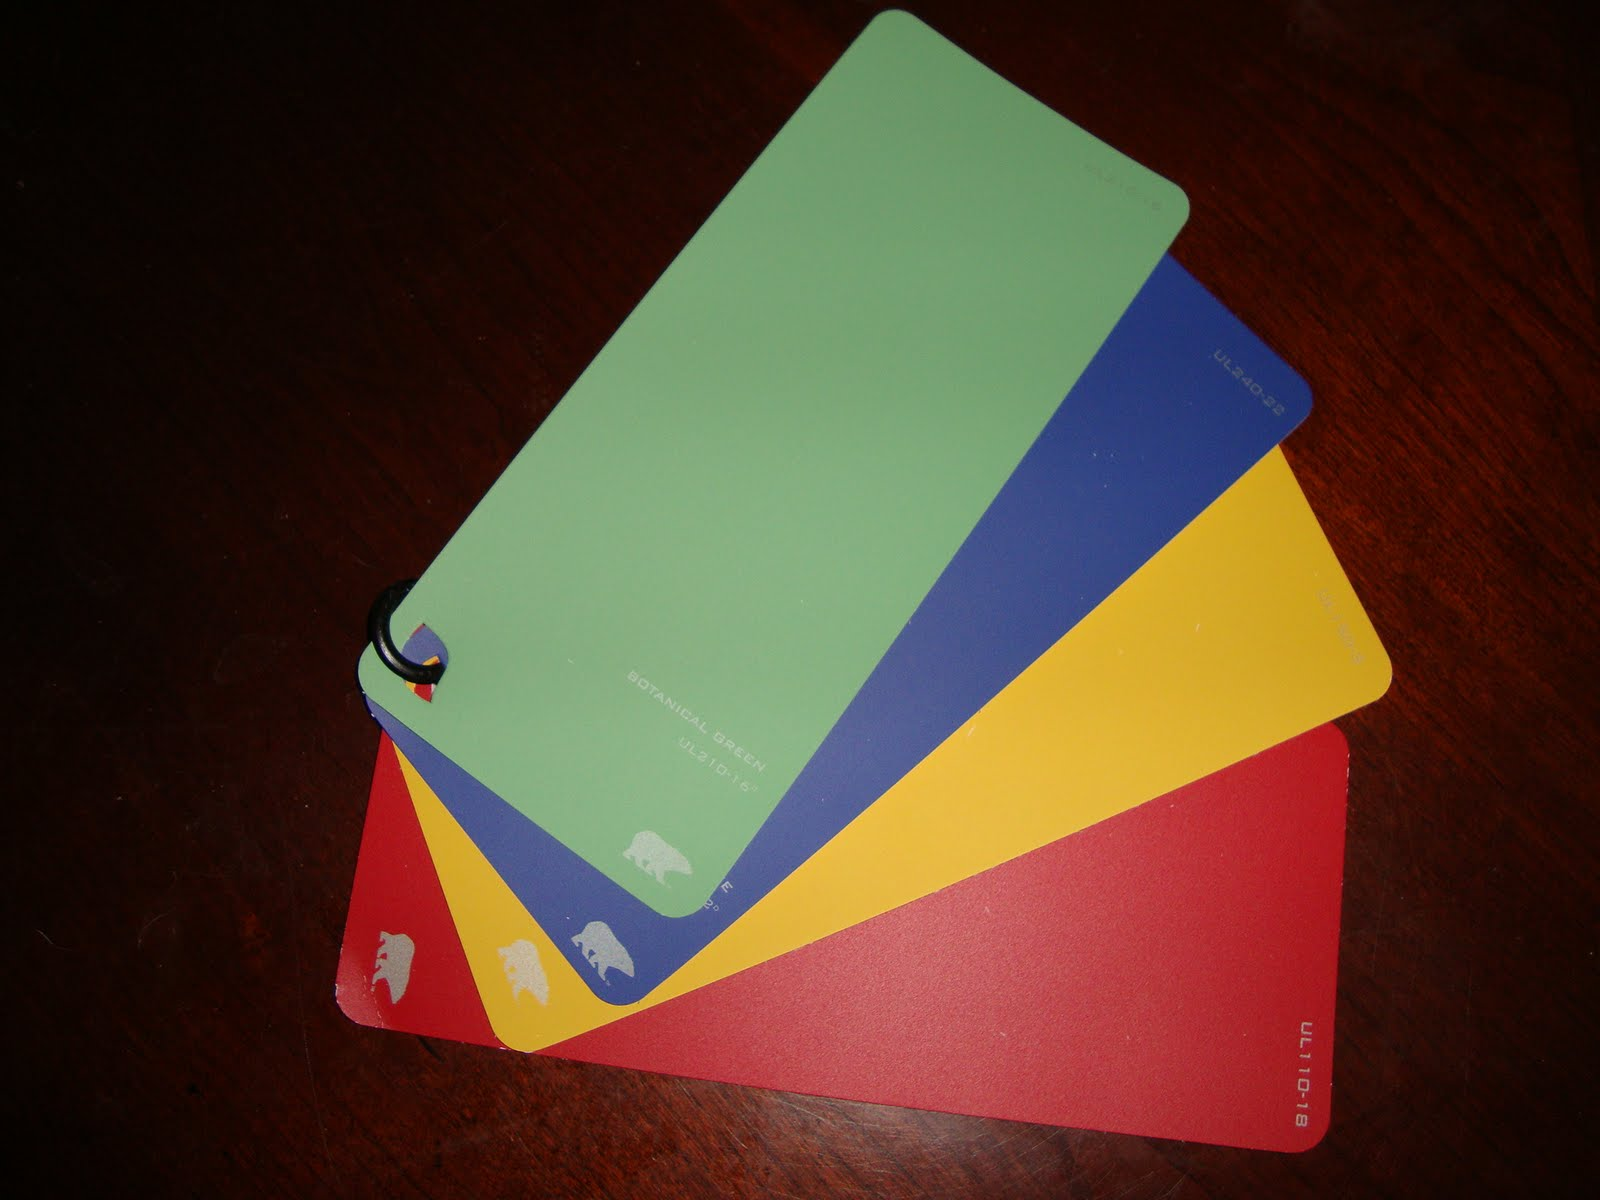 I Have Always Done A Flip Your Card Behavior Program Feel That It Really Works Gives Ownership To The Student For Inropriate And